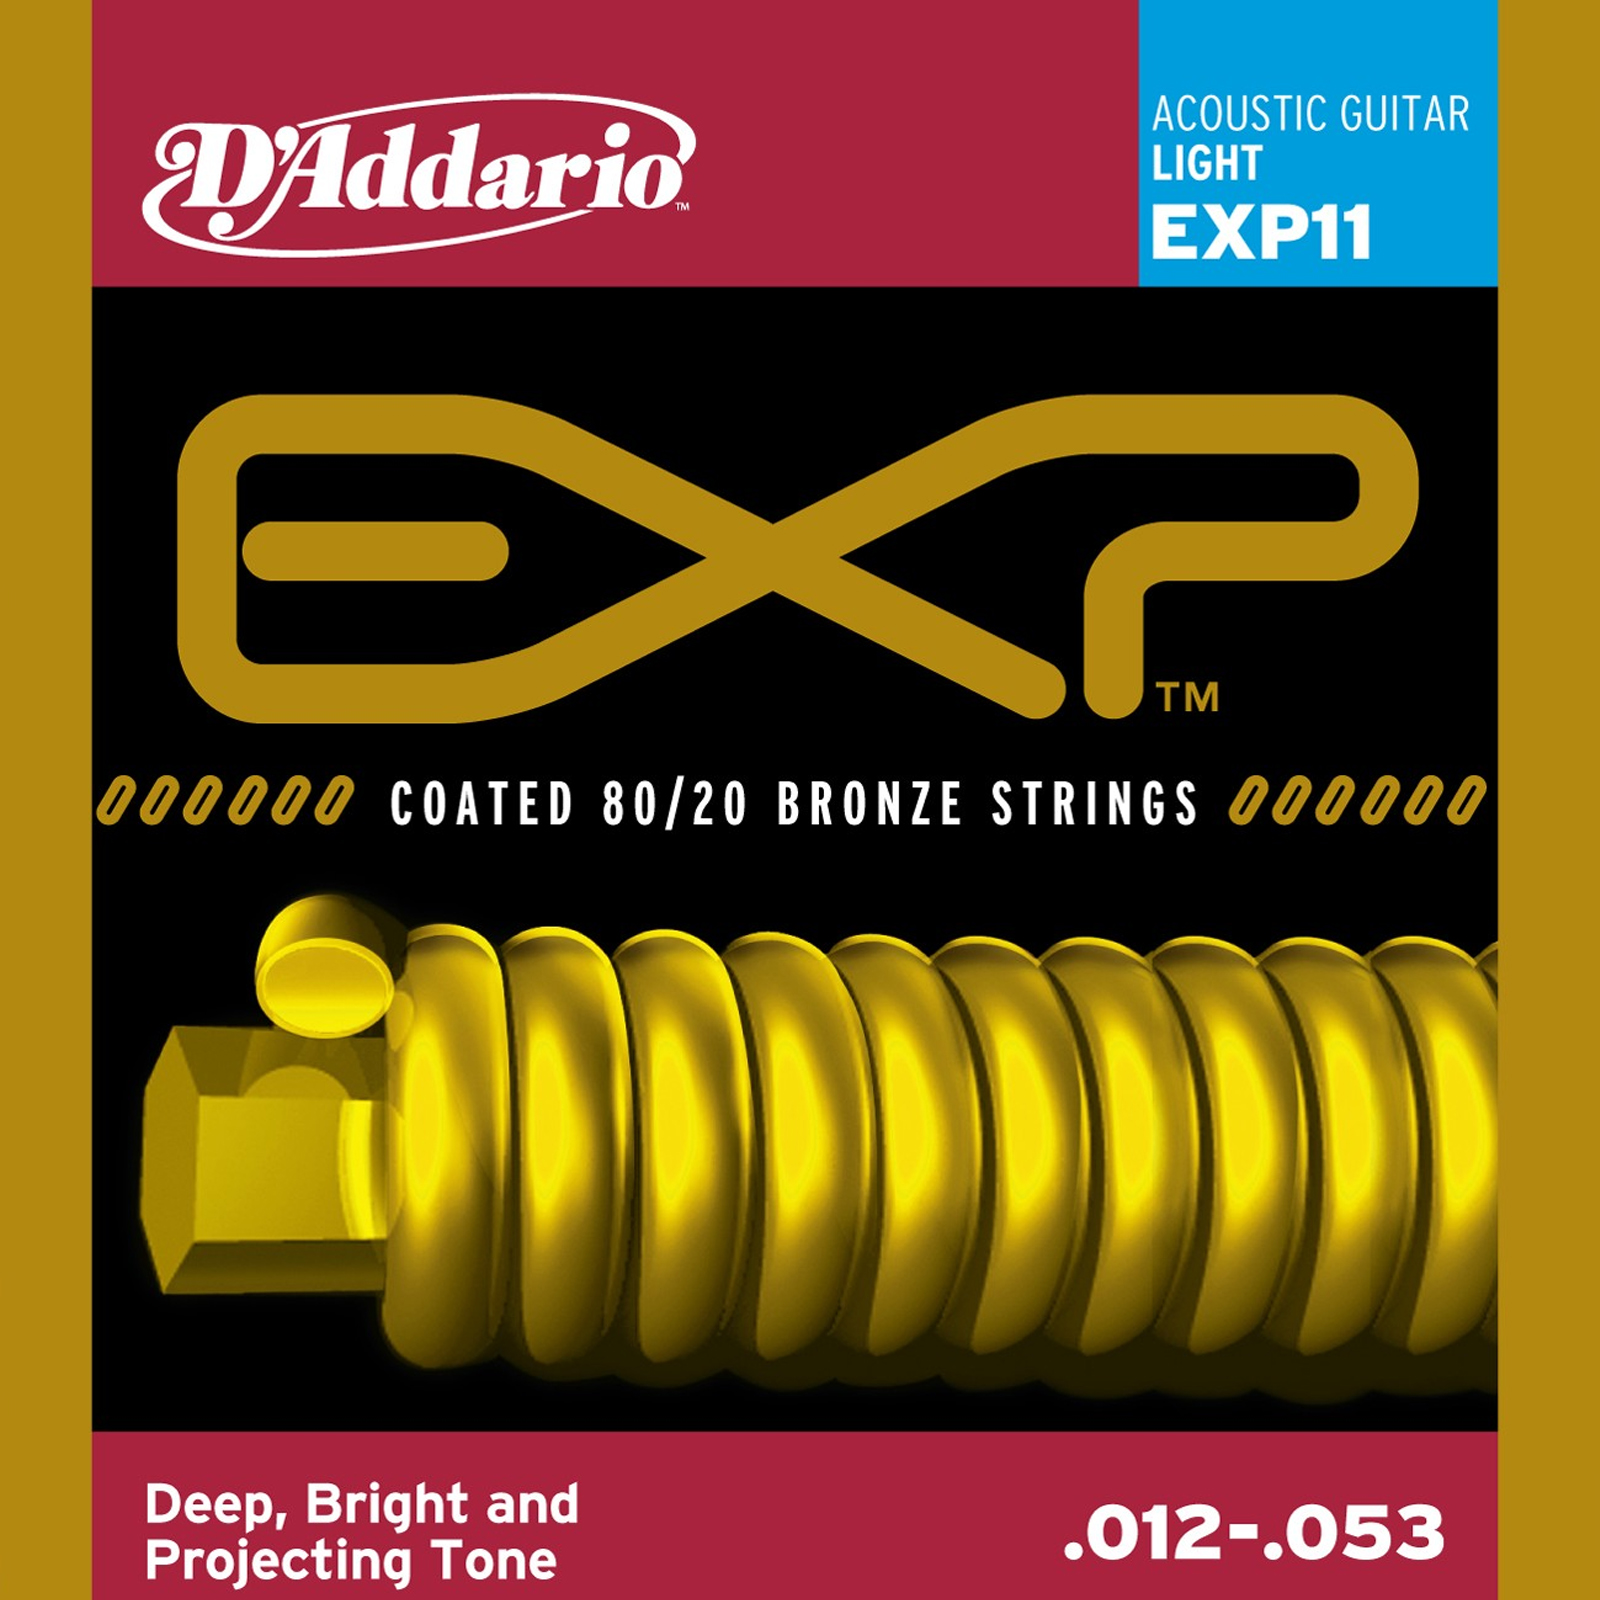 D'Addario EXP11 Coated Acoustic Guitar Strings, 80 20, Light, 12-53 by D'Addario